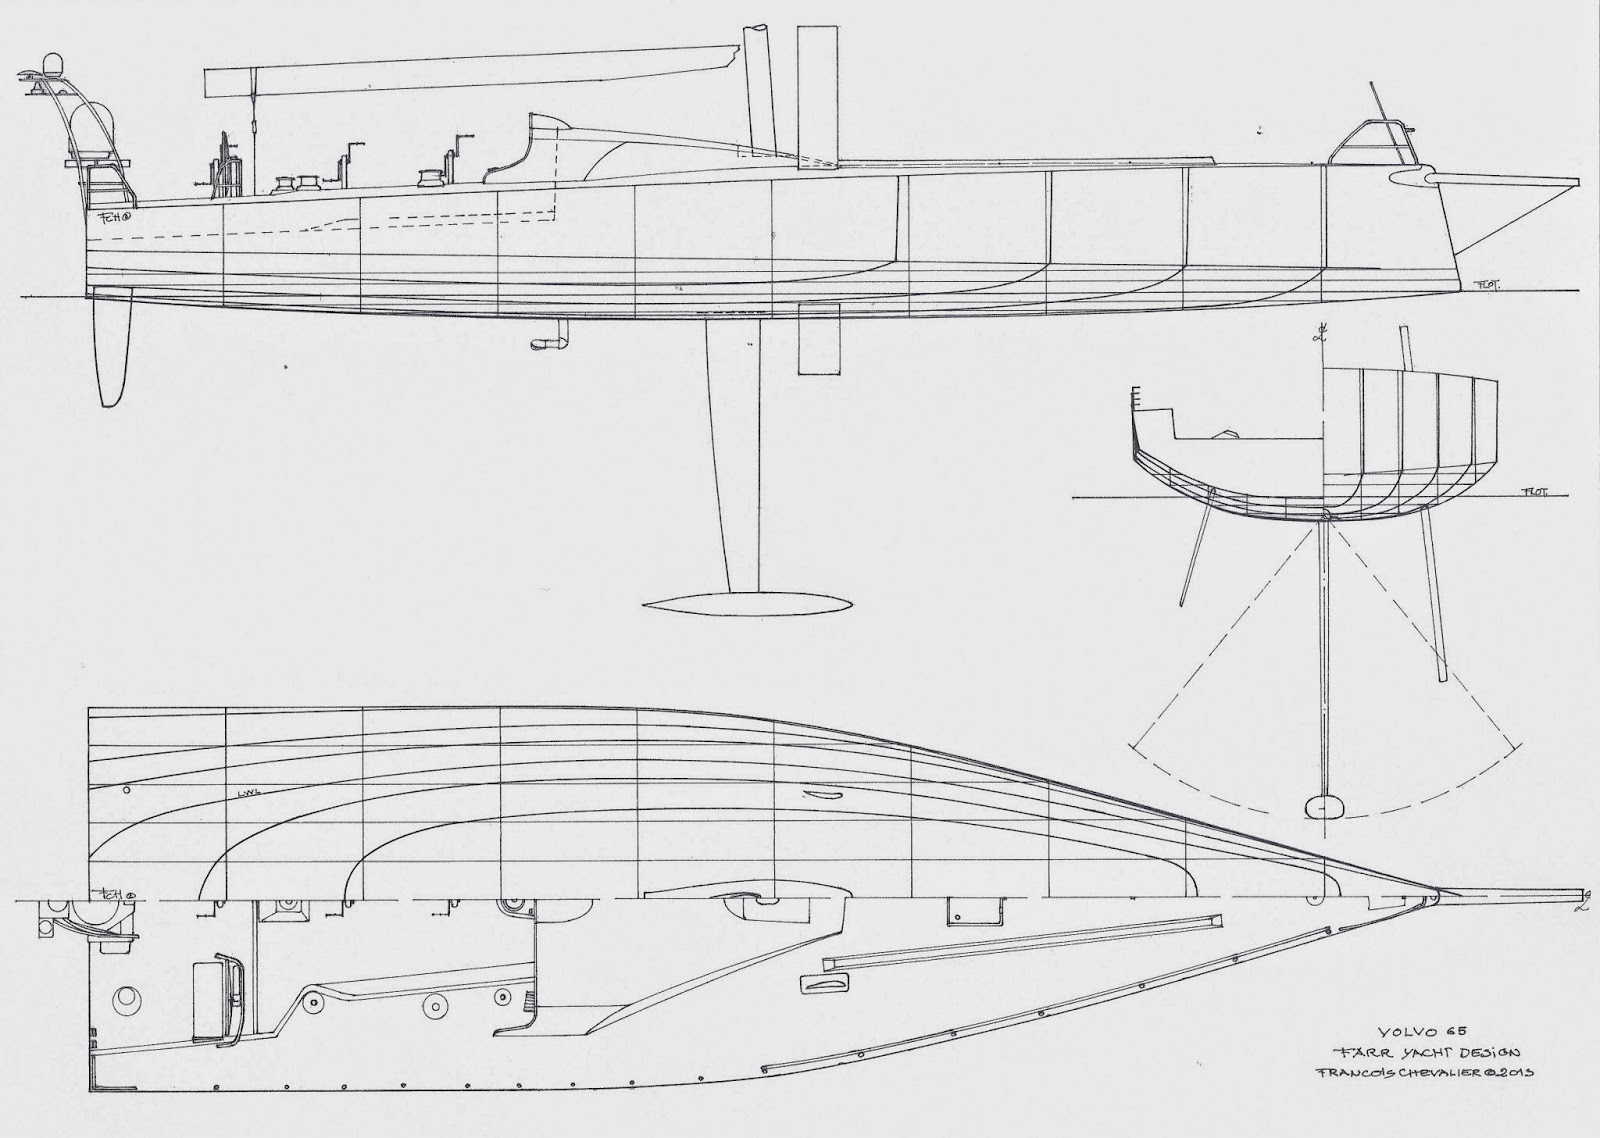 chevalier taglang volvo ocean race drawings and design evolution groasis waterboxx diagram racing yacht diagram [ 1600 x 1138 Pixel ]